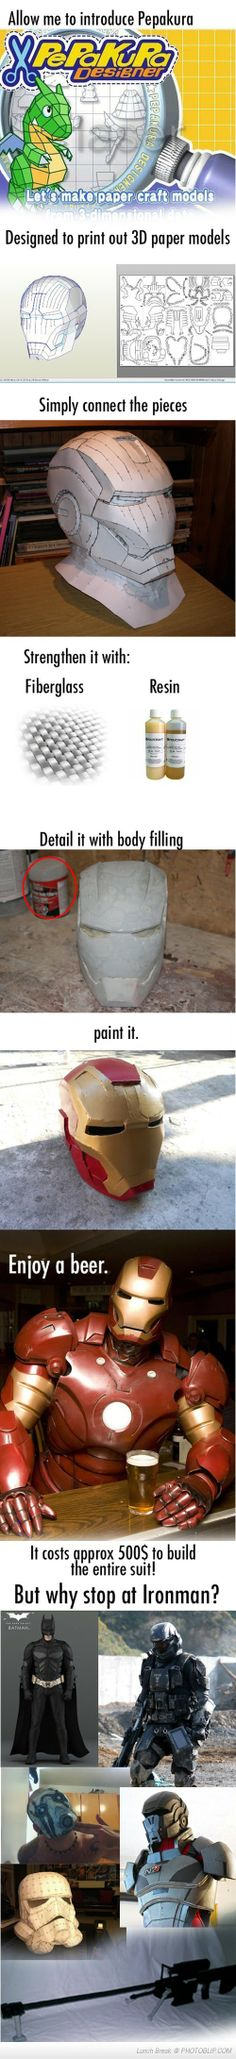 Learn How To Make Your Own Iron Man Suit...